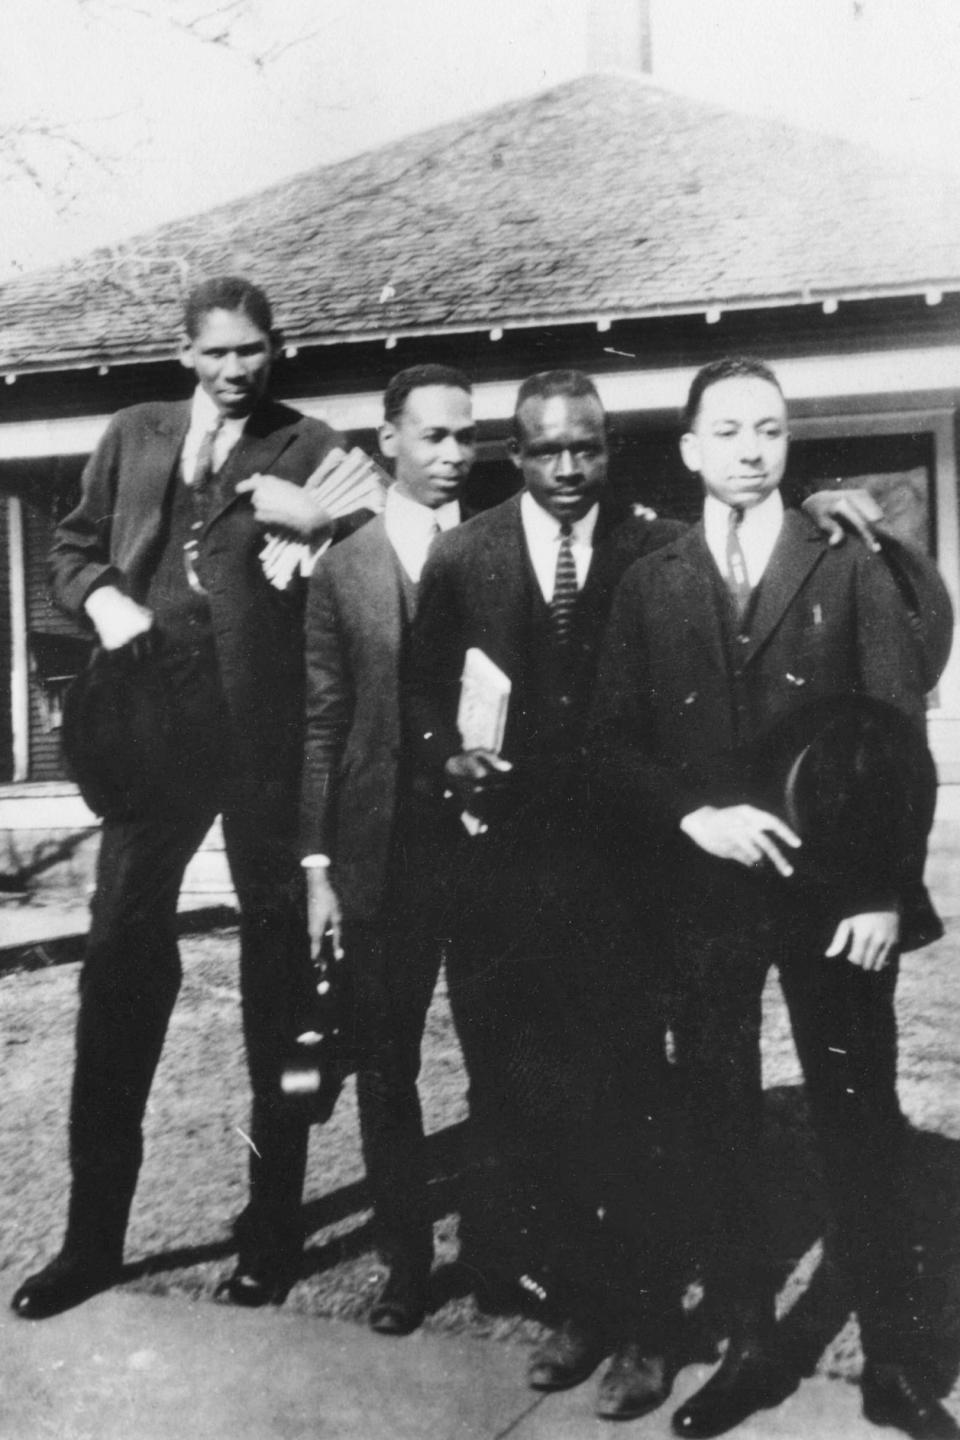 This photo provided by the Department of Special Collections, McFarlin Library, The University of Tulsa shows James T. A. West, an instructor at Booker T. Washington High School and three other Black men. It is believed that the photo was taken in Tulsa, Okla. prior to the Tulsa Race Massacre in 1921. (Department of Special Collections, McFarlin Library, The University of Tulsa via AP)